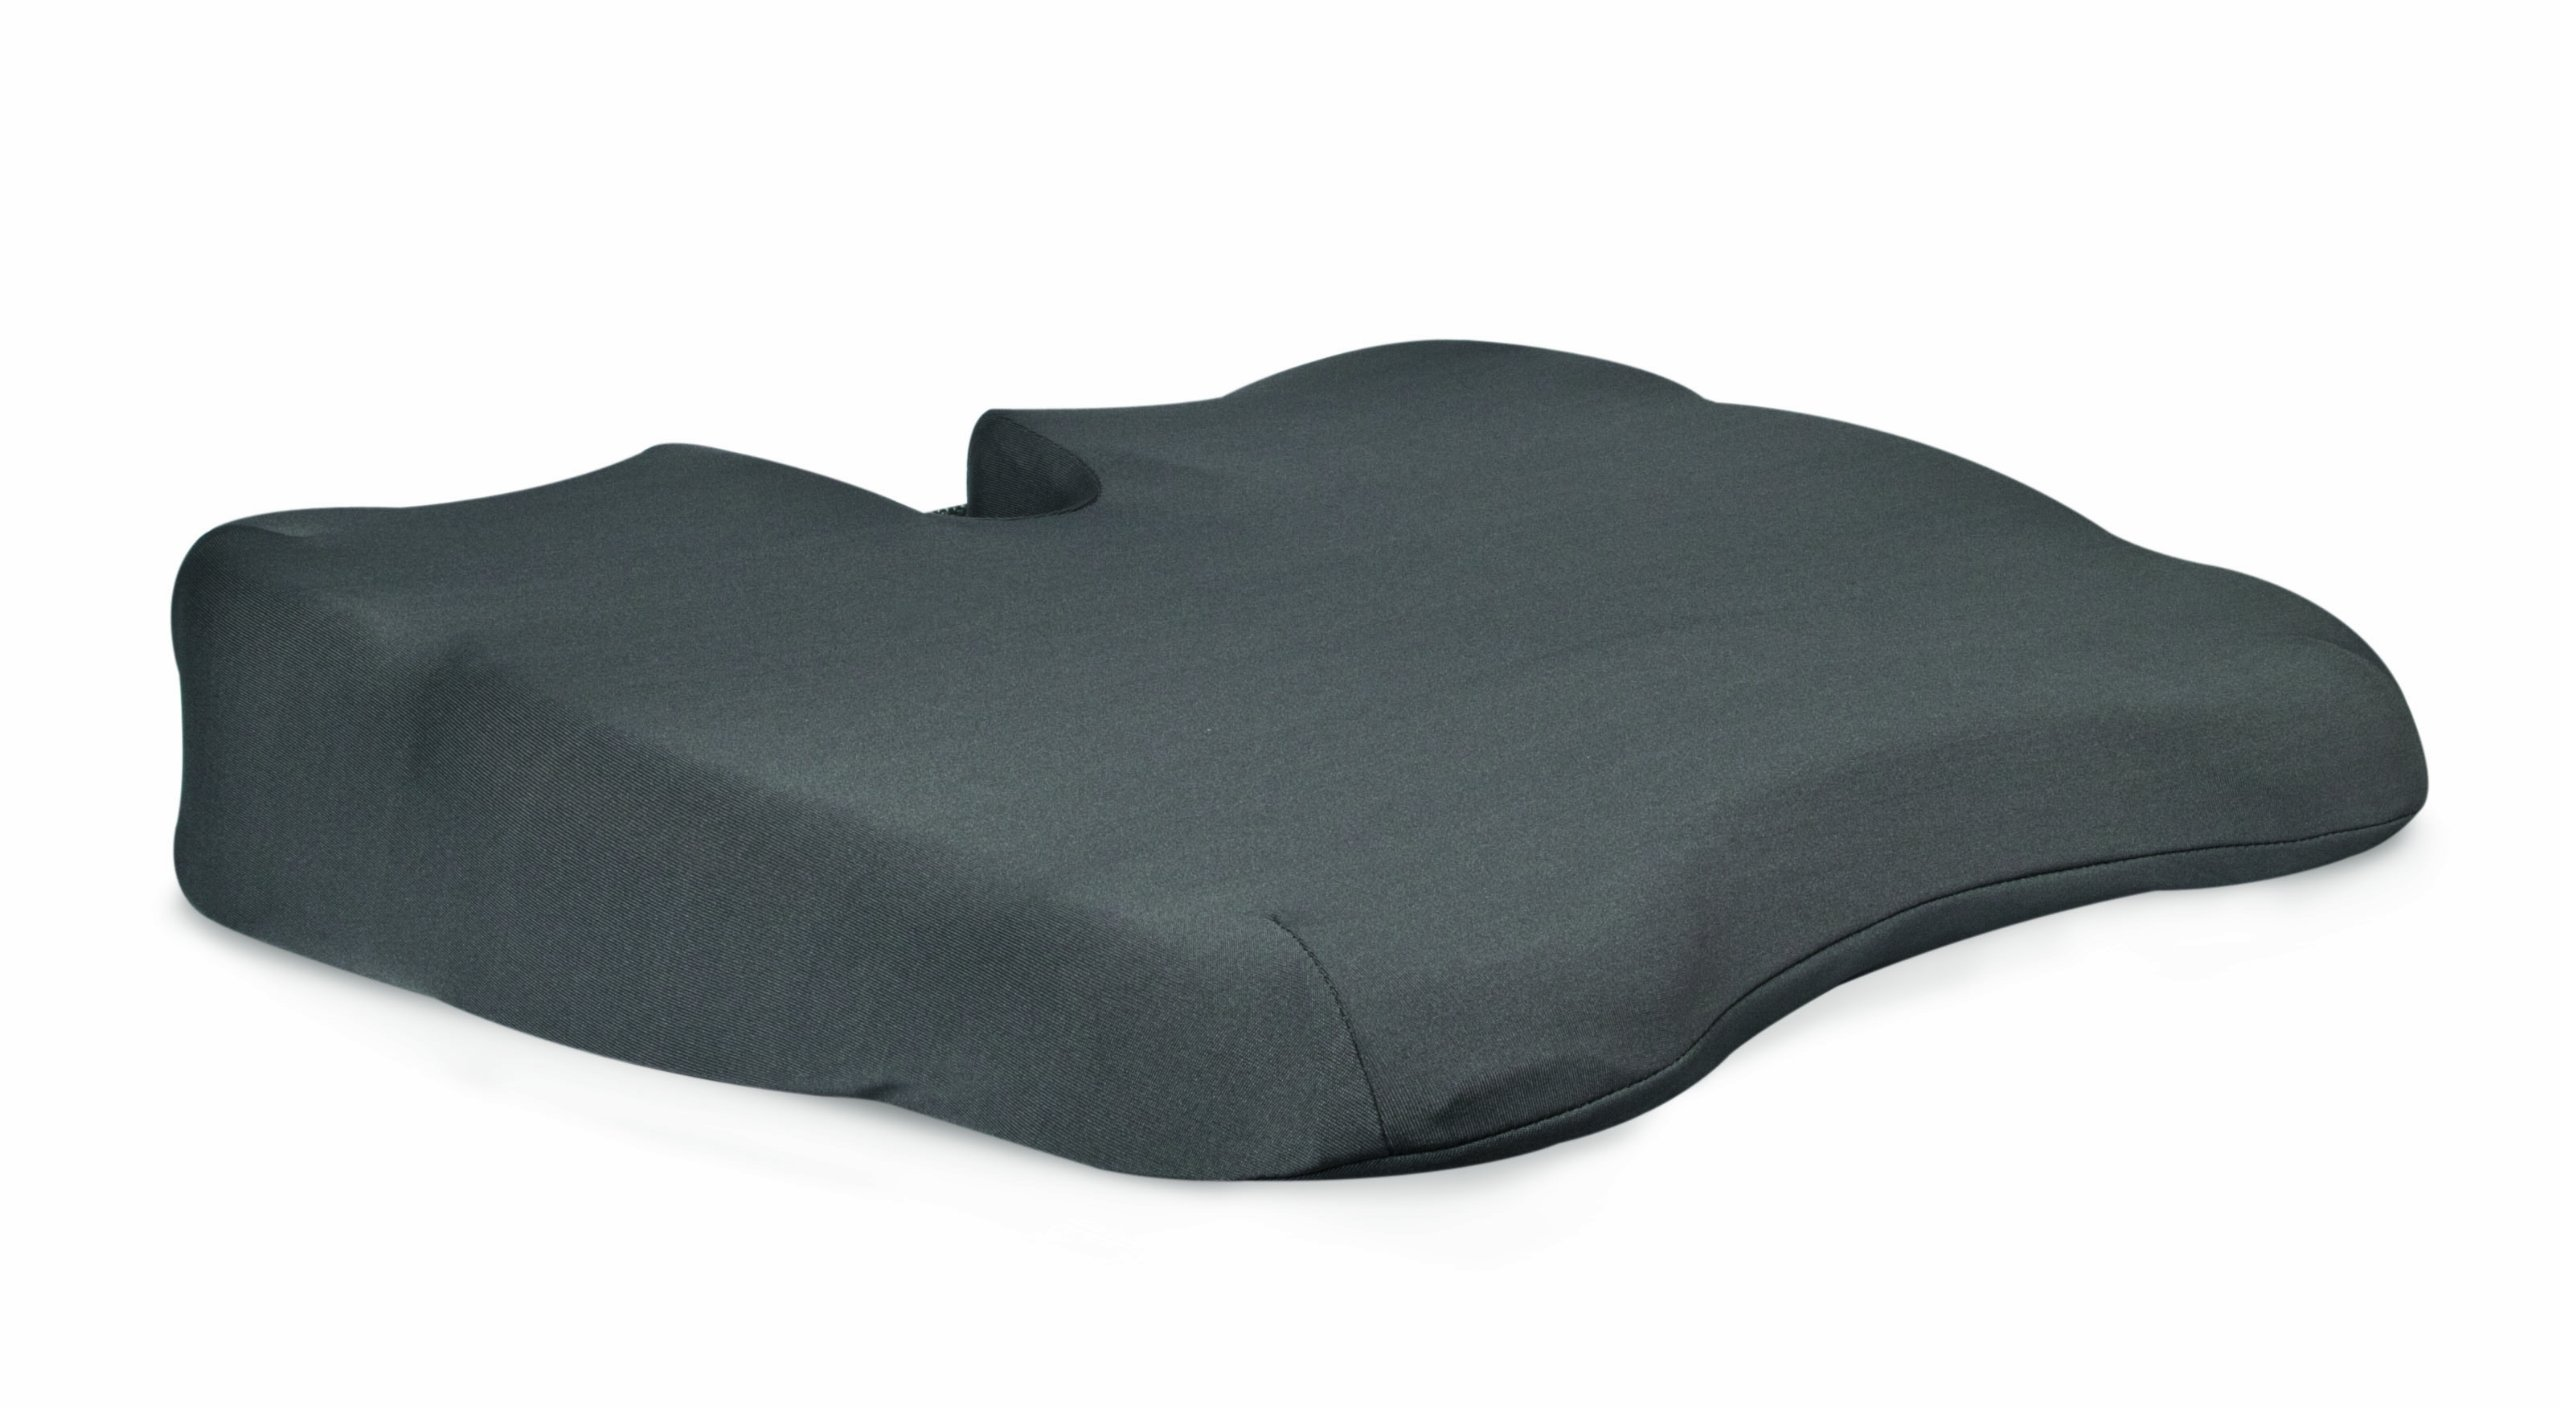 Kabooti Ergonomically Designed Coccyx Foam Seat Cushion 3-in-1 Donut Foam Seat, Gray